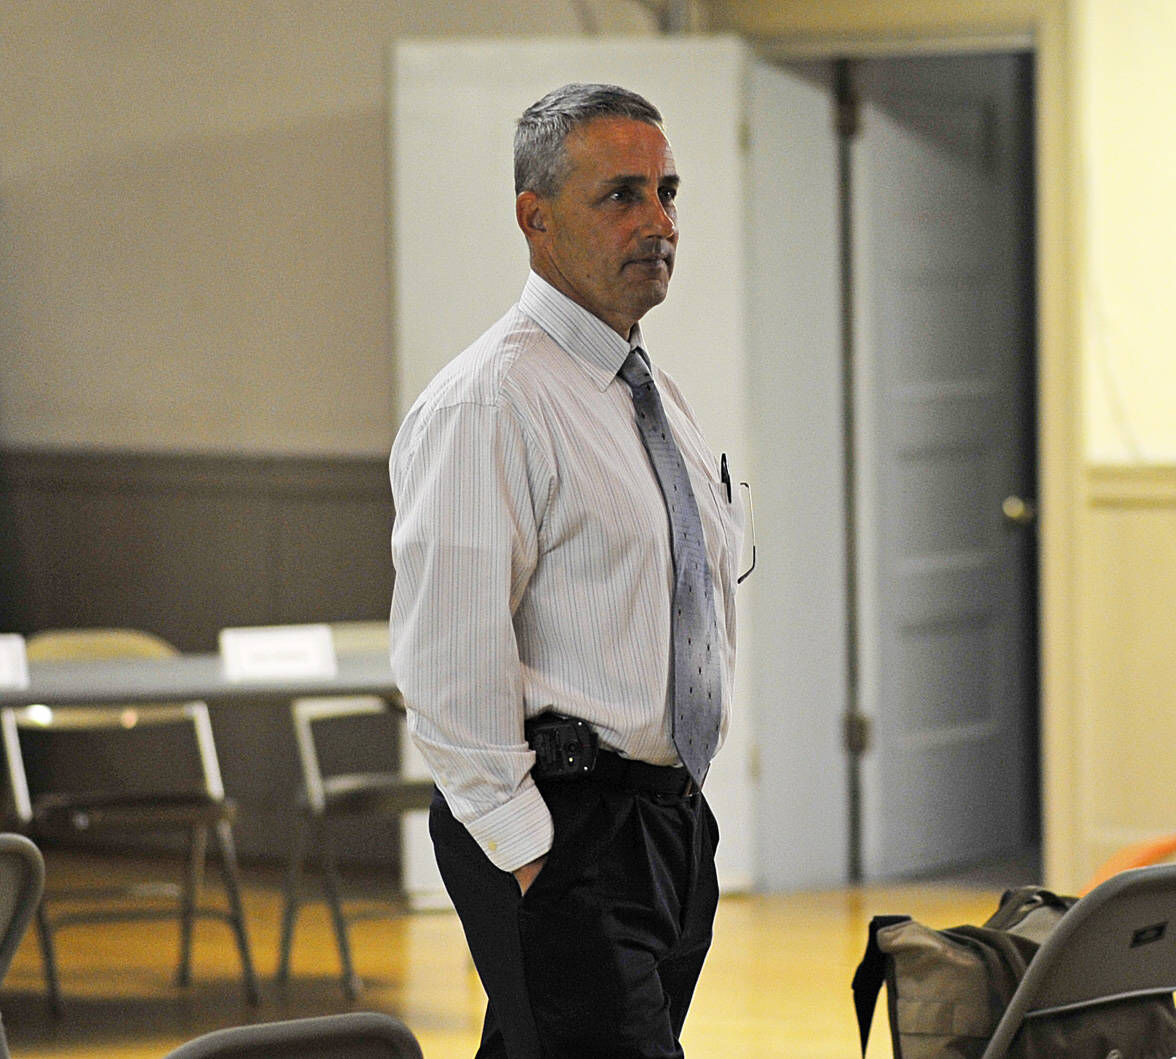 Lancaster: Samson Stepping Down As Town Manager